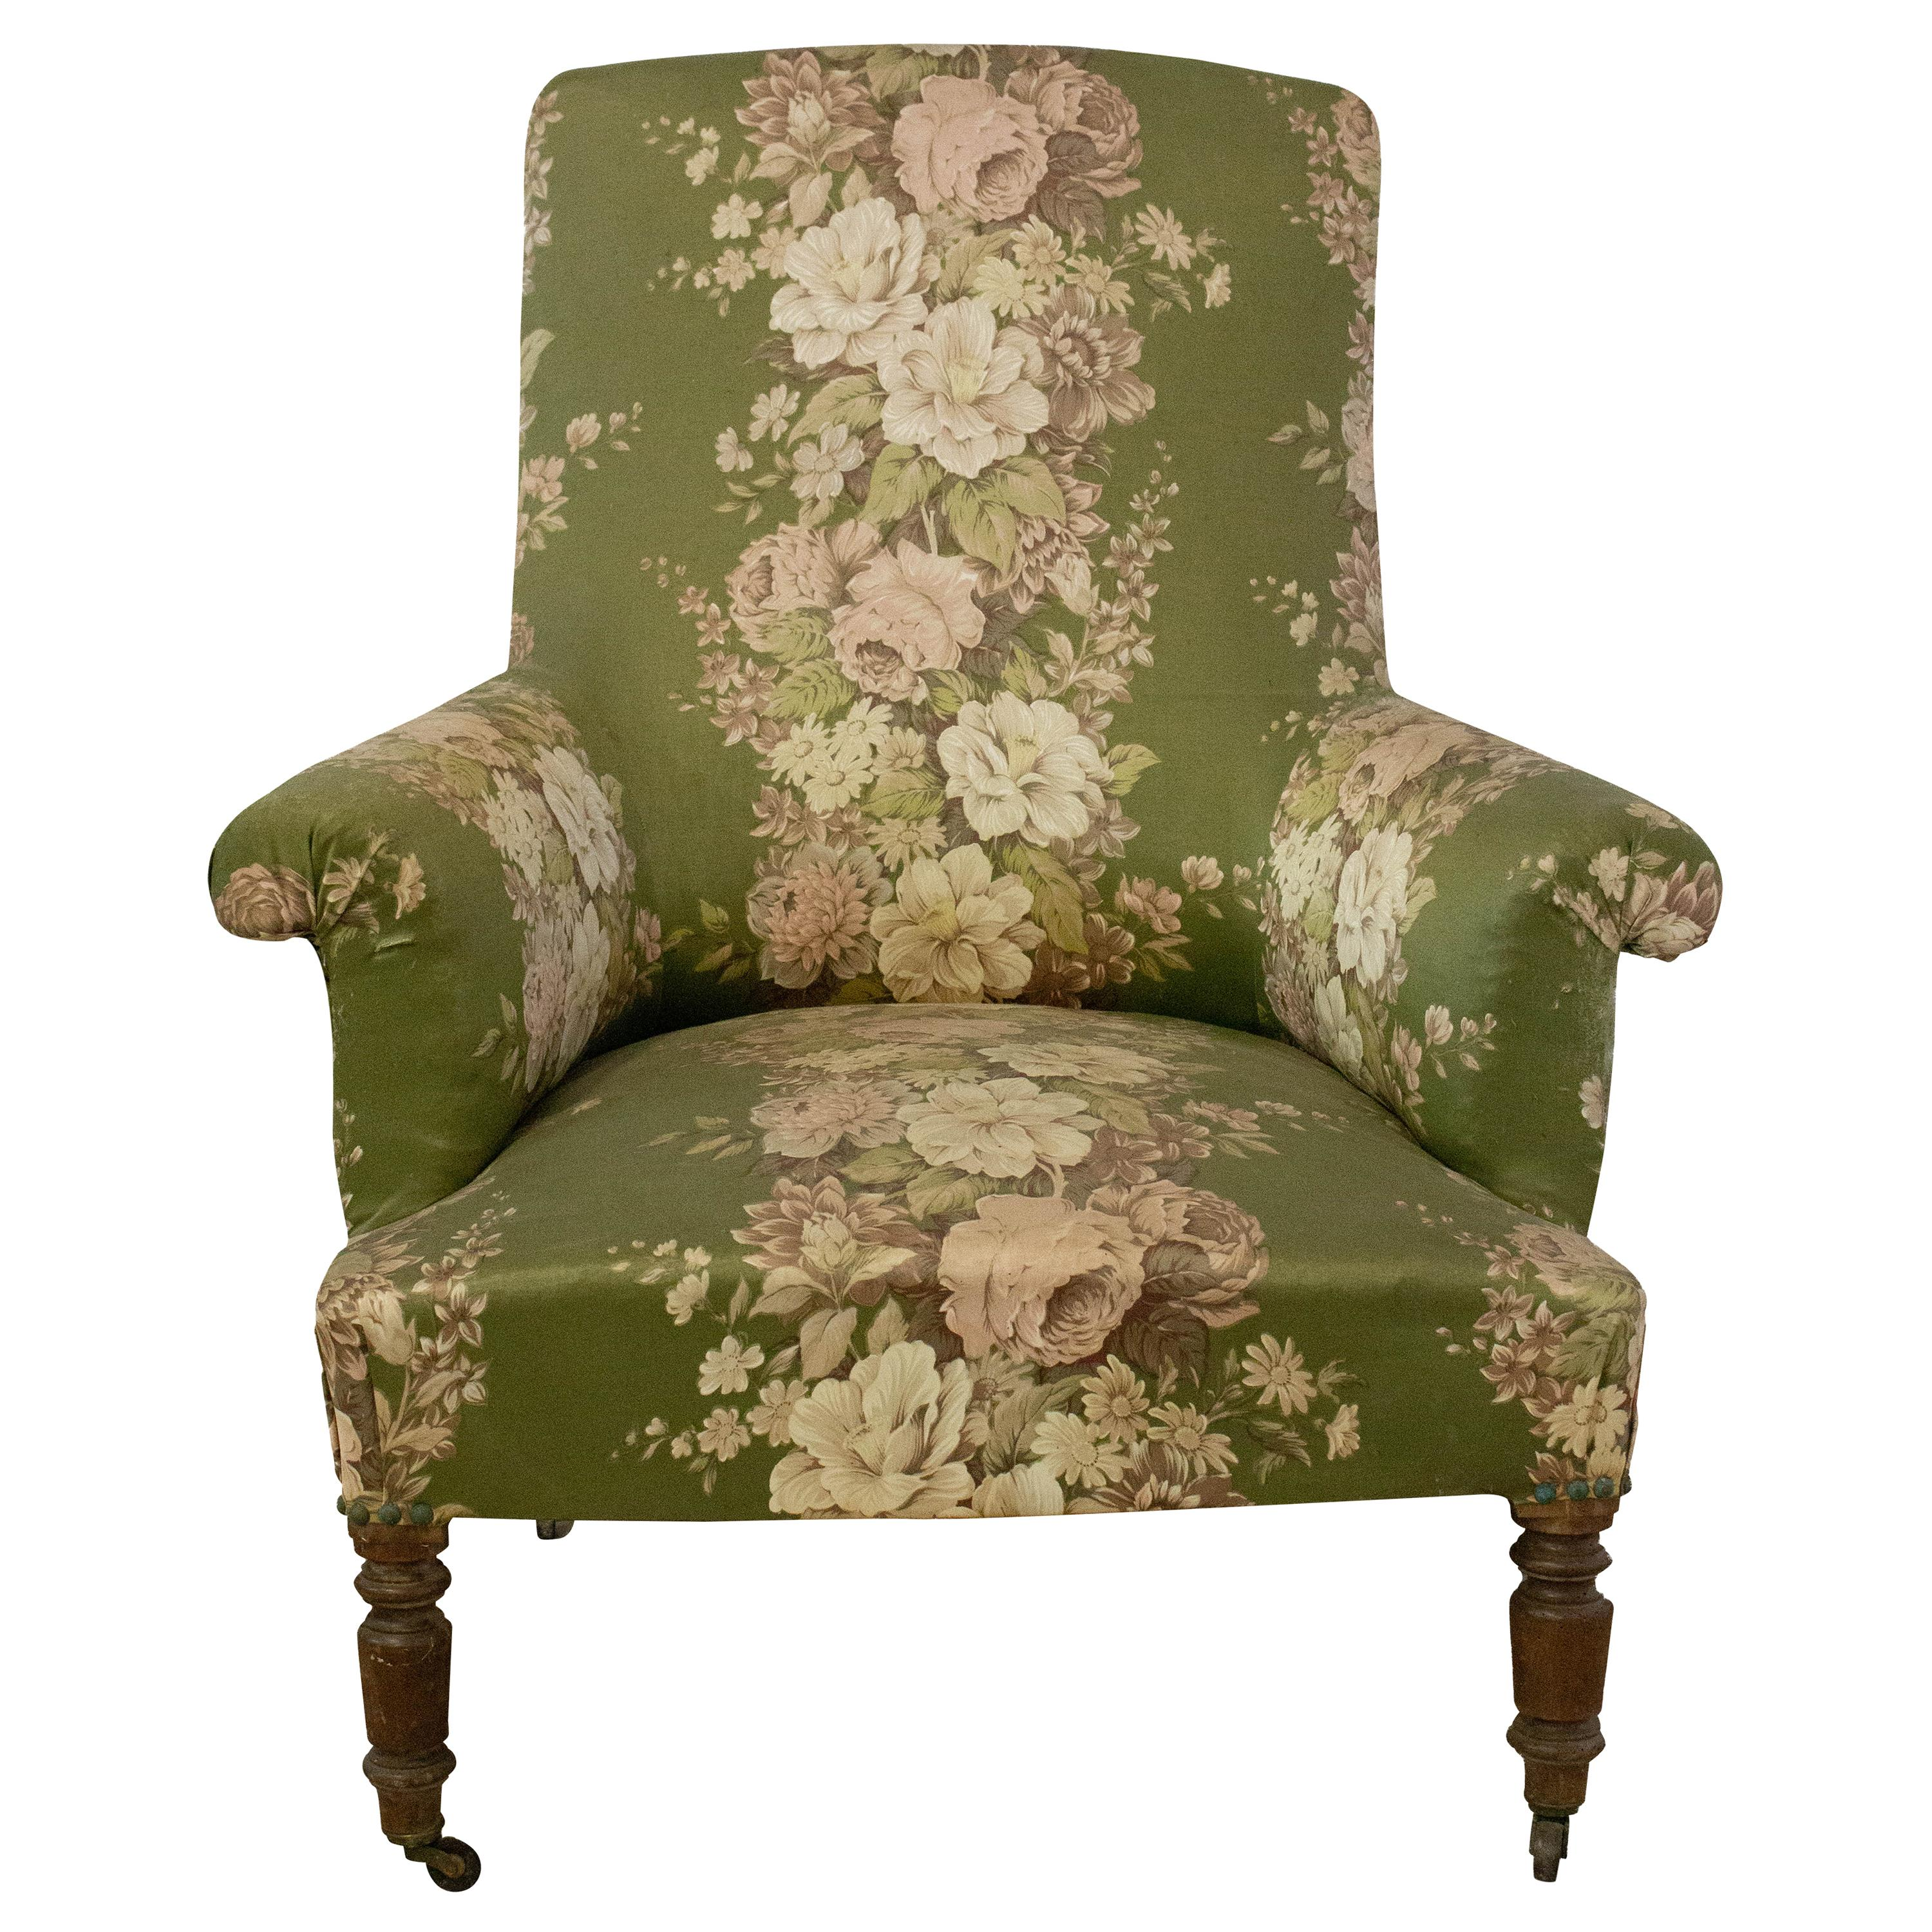 Antique Armchair French 19th Century Bergere Napoleon III to Recover